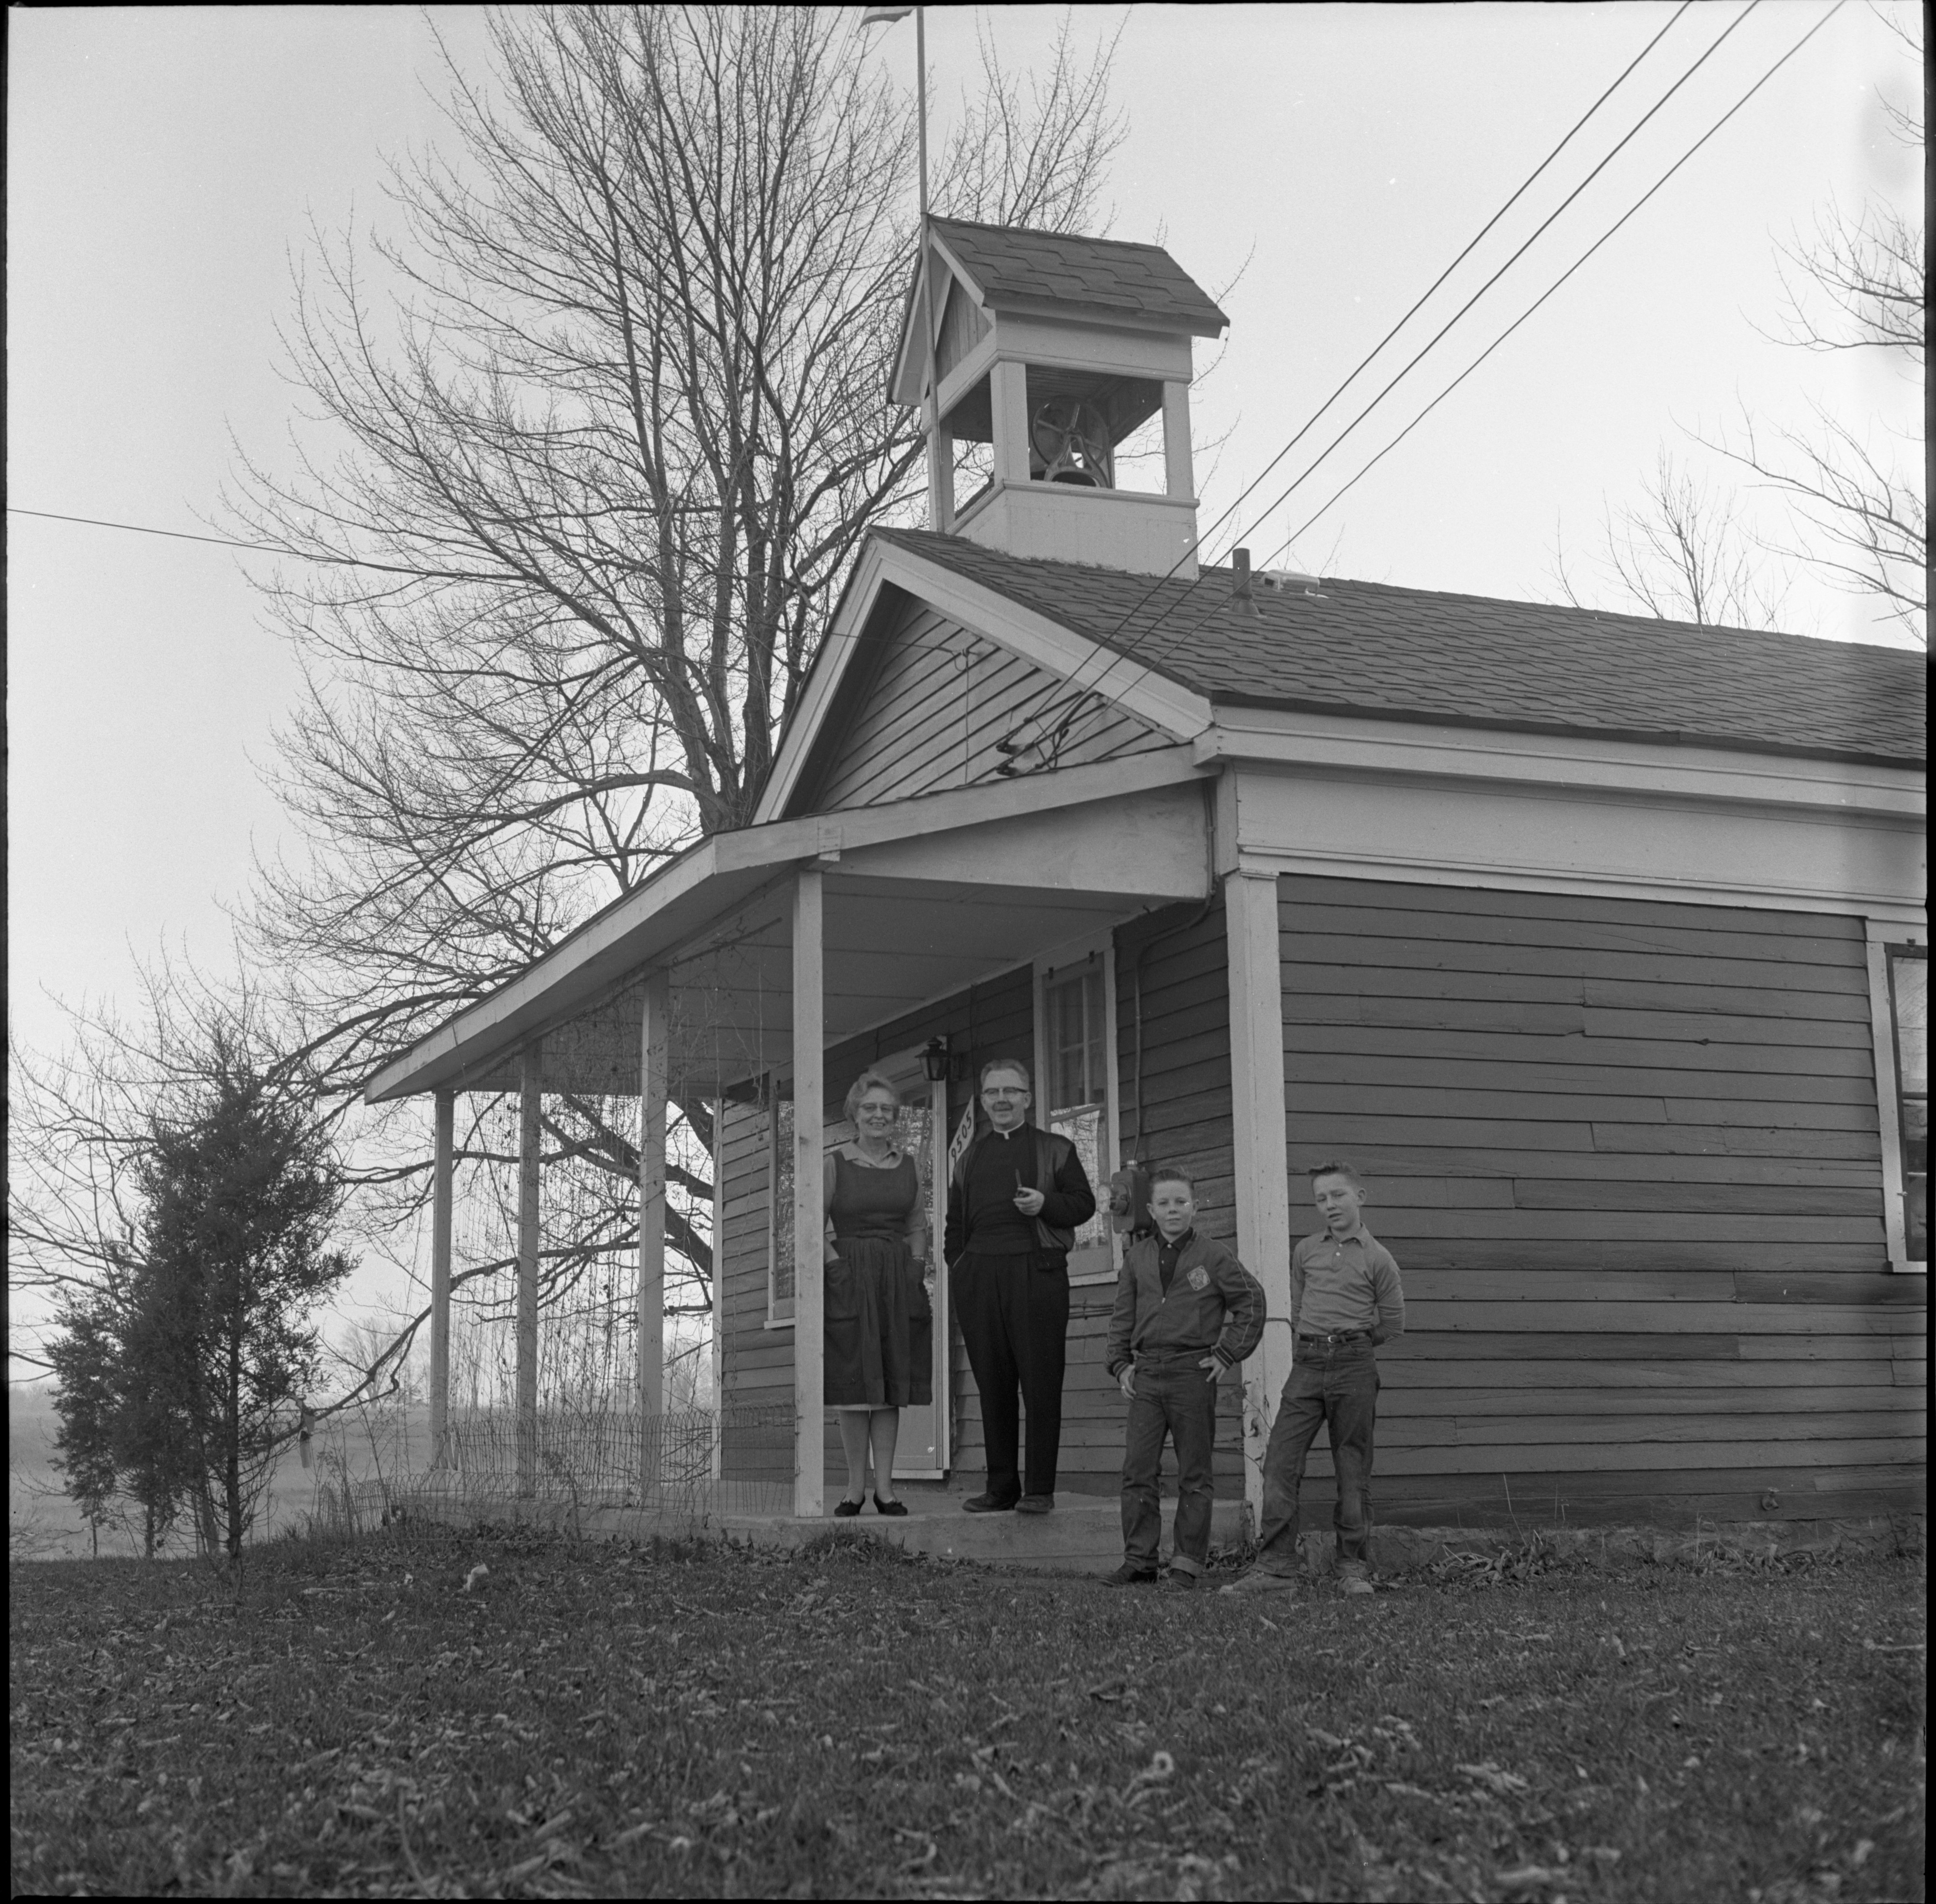 The Miller Family Outside Their Renovated Schoolhouse Home, December 1960 image